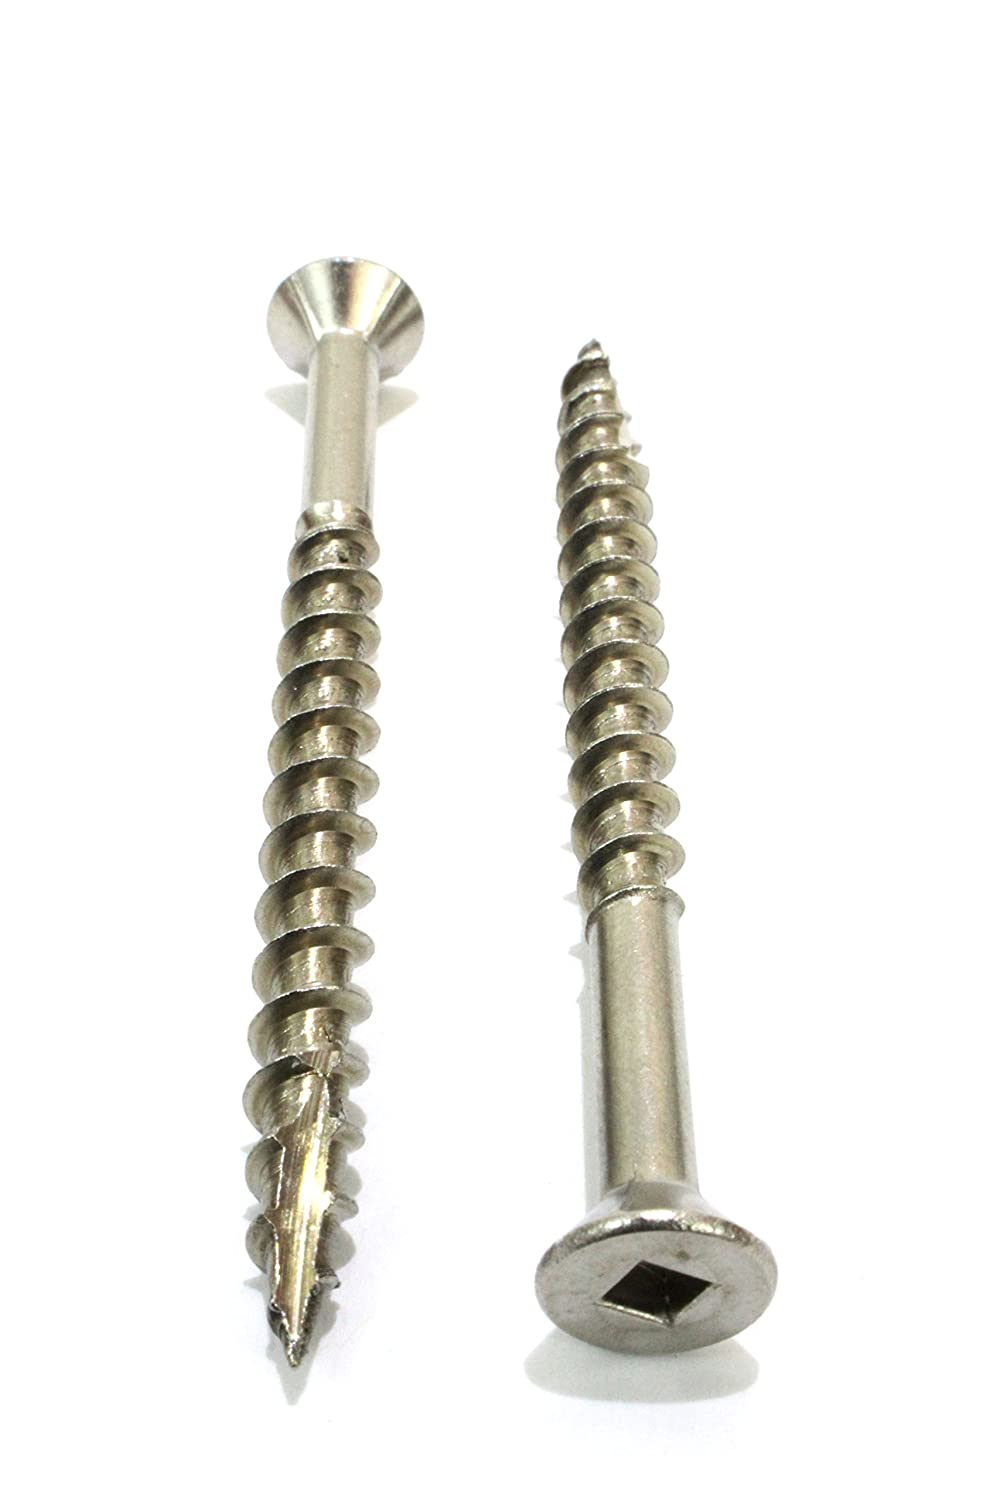 Hidden Fasteners. Type 17 Wood Cutting Point Stainless Steel #8 x 1-1//4 Stainless Deck Screws, Square Drive 100 Pack by Bolt Dropper 305 18-8